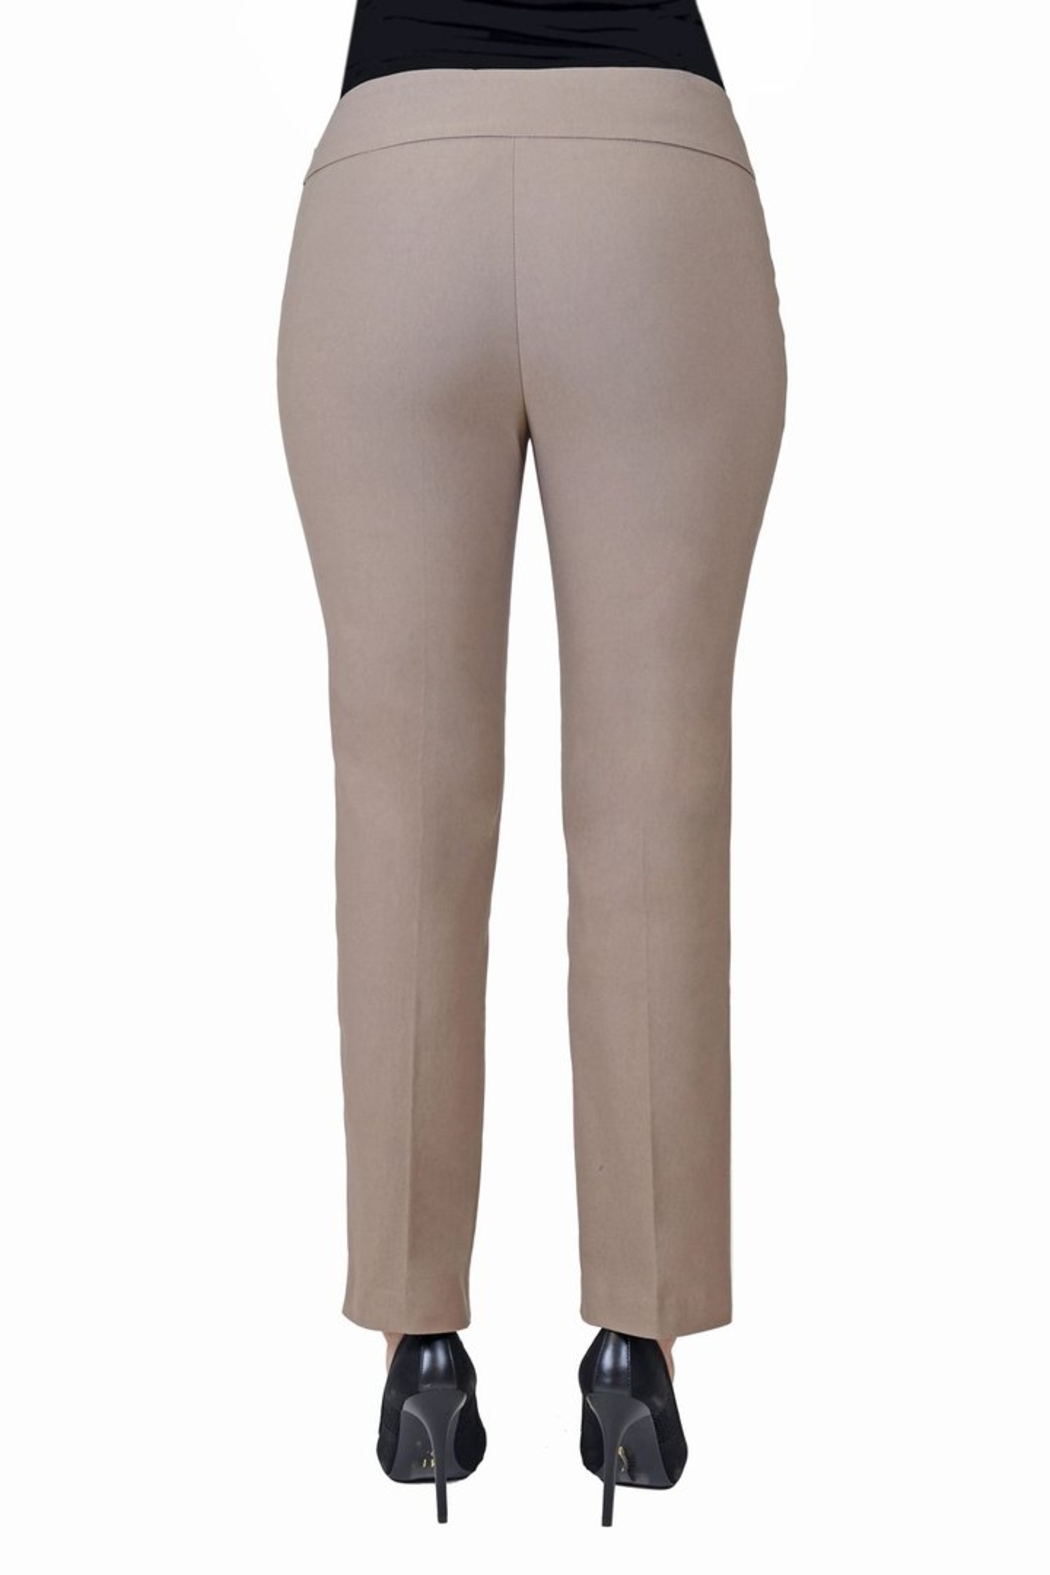 lisette L Mushroom color slim fit pant. - Front Full Image